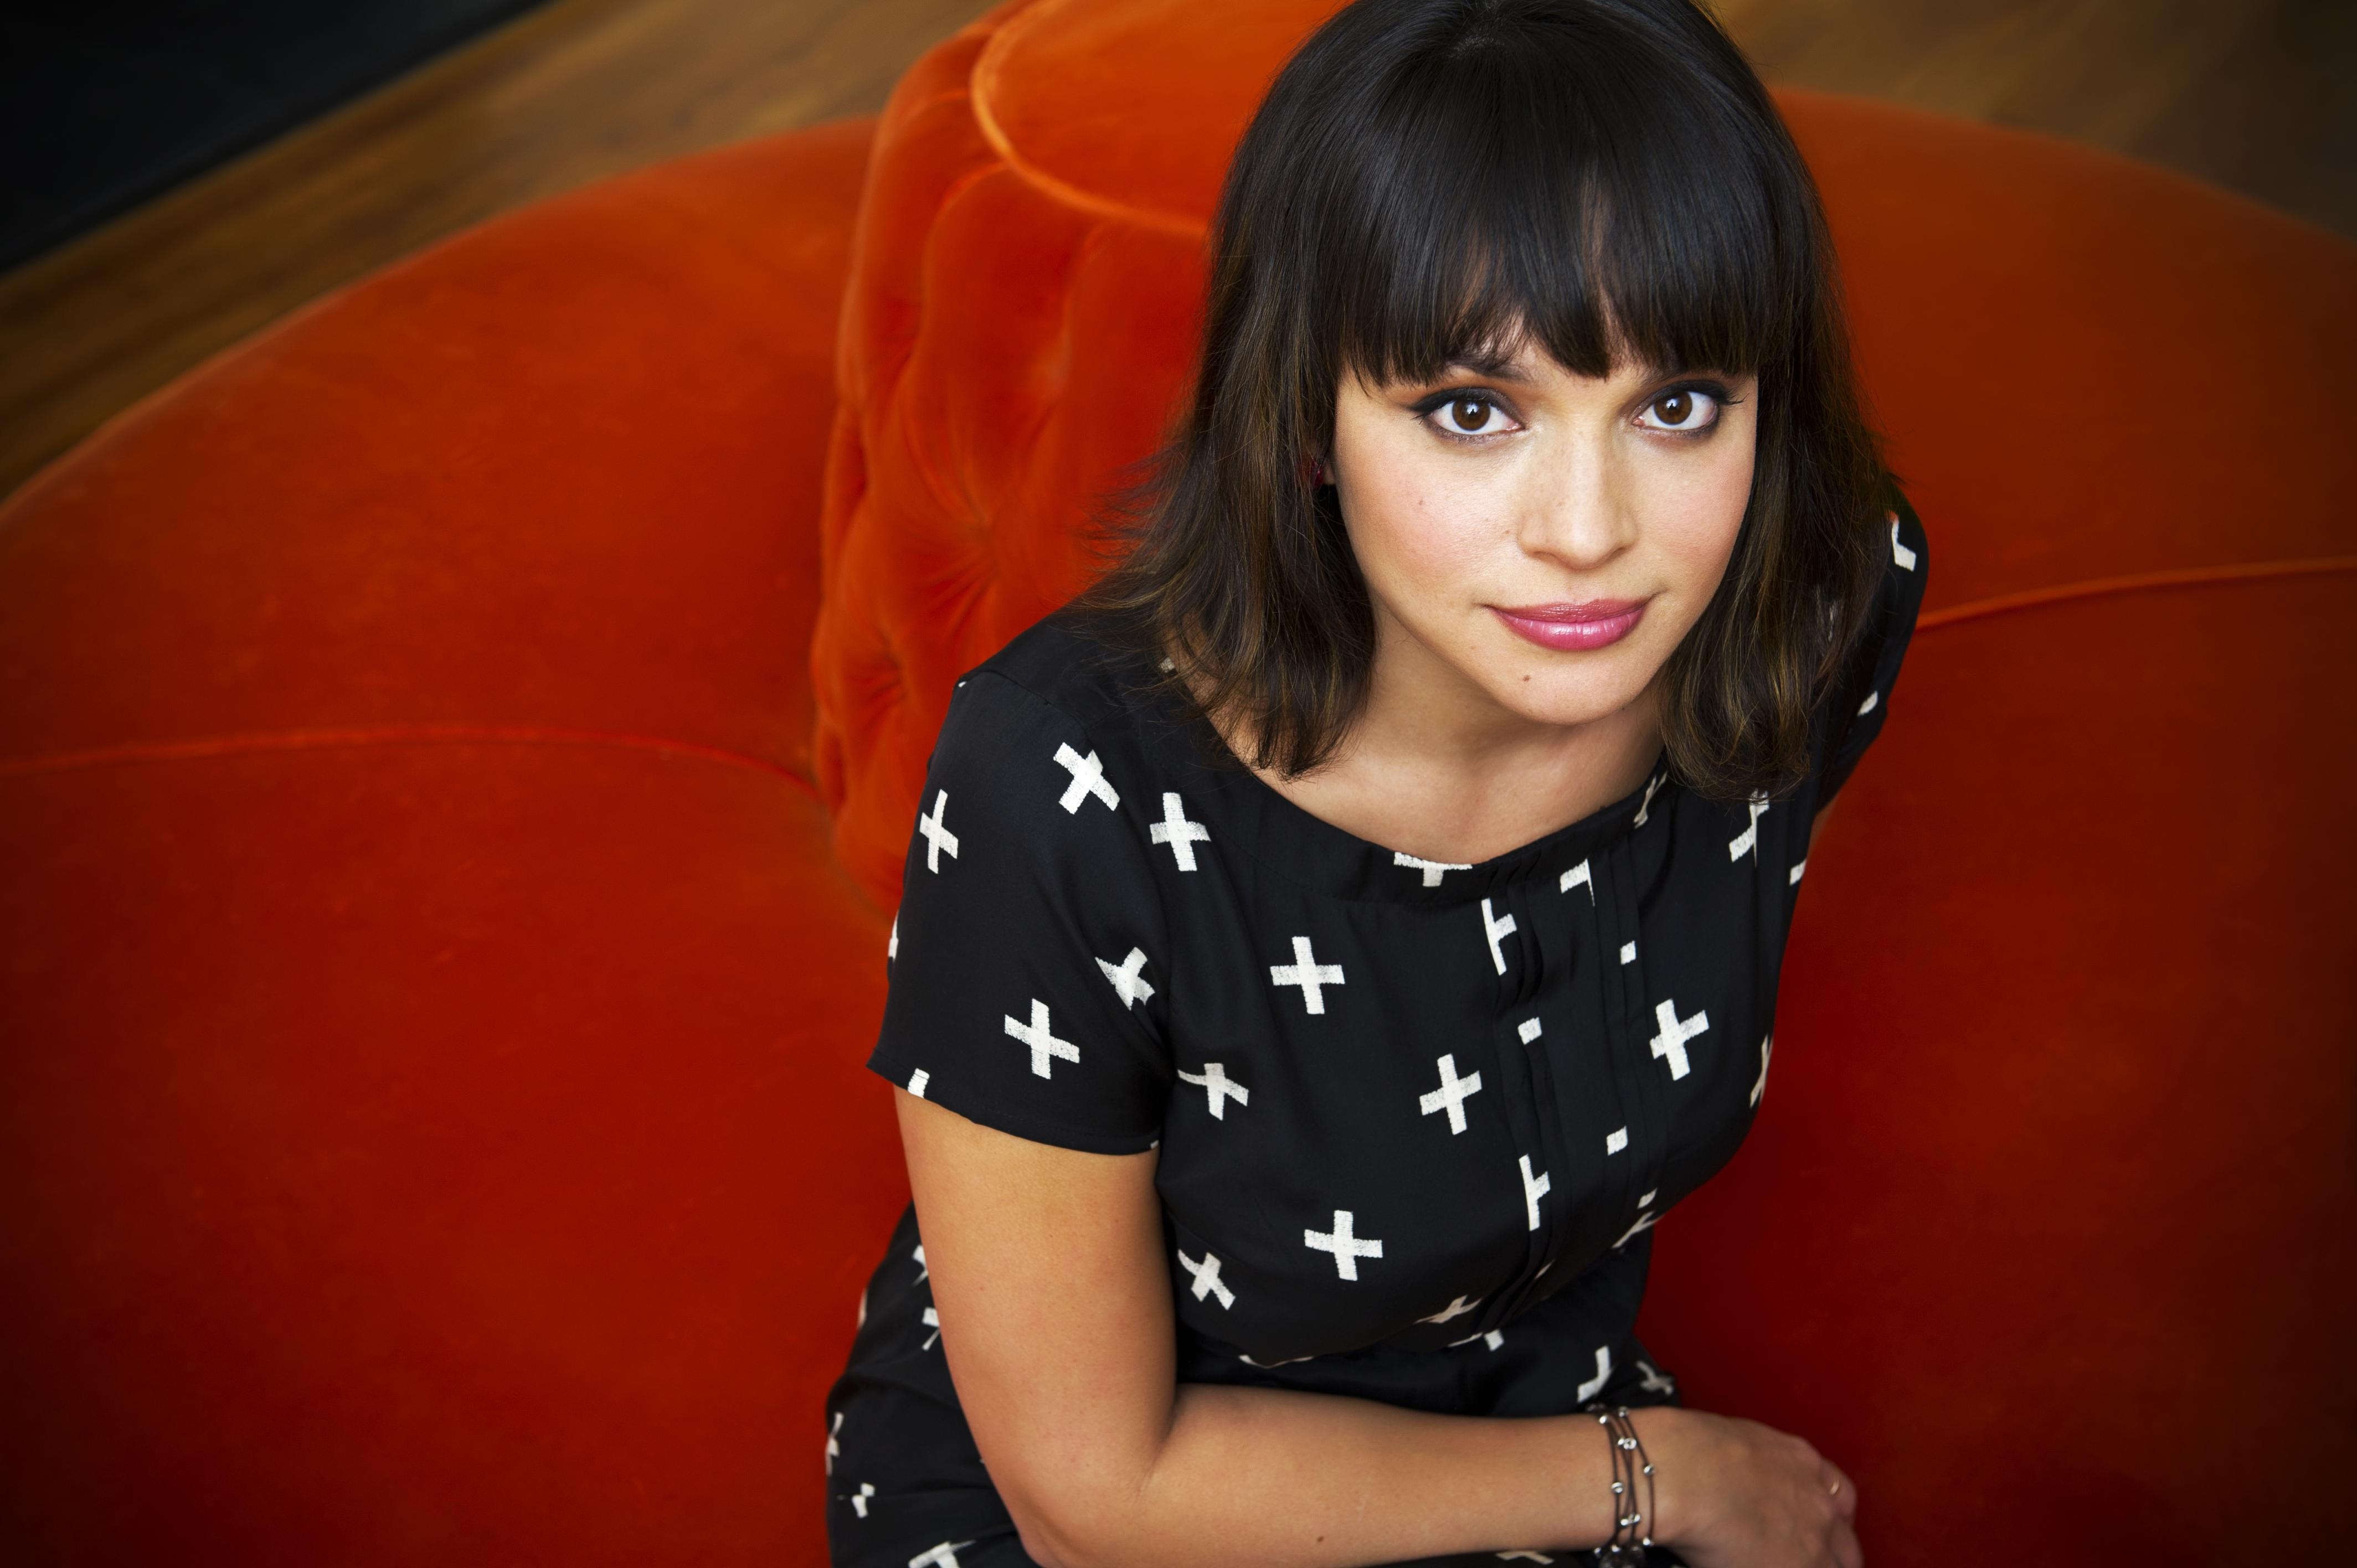 NORAH JONES – Exklusives Radio-Konzert in Köln